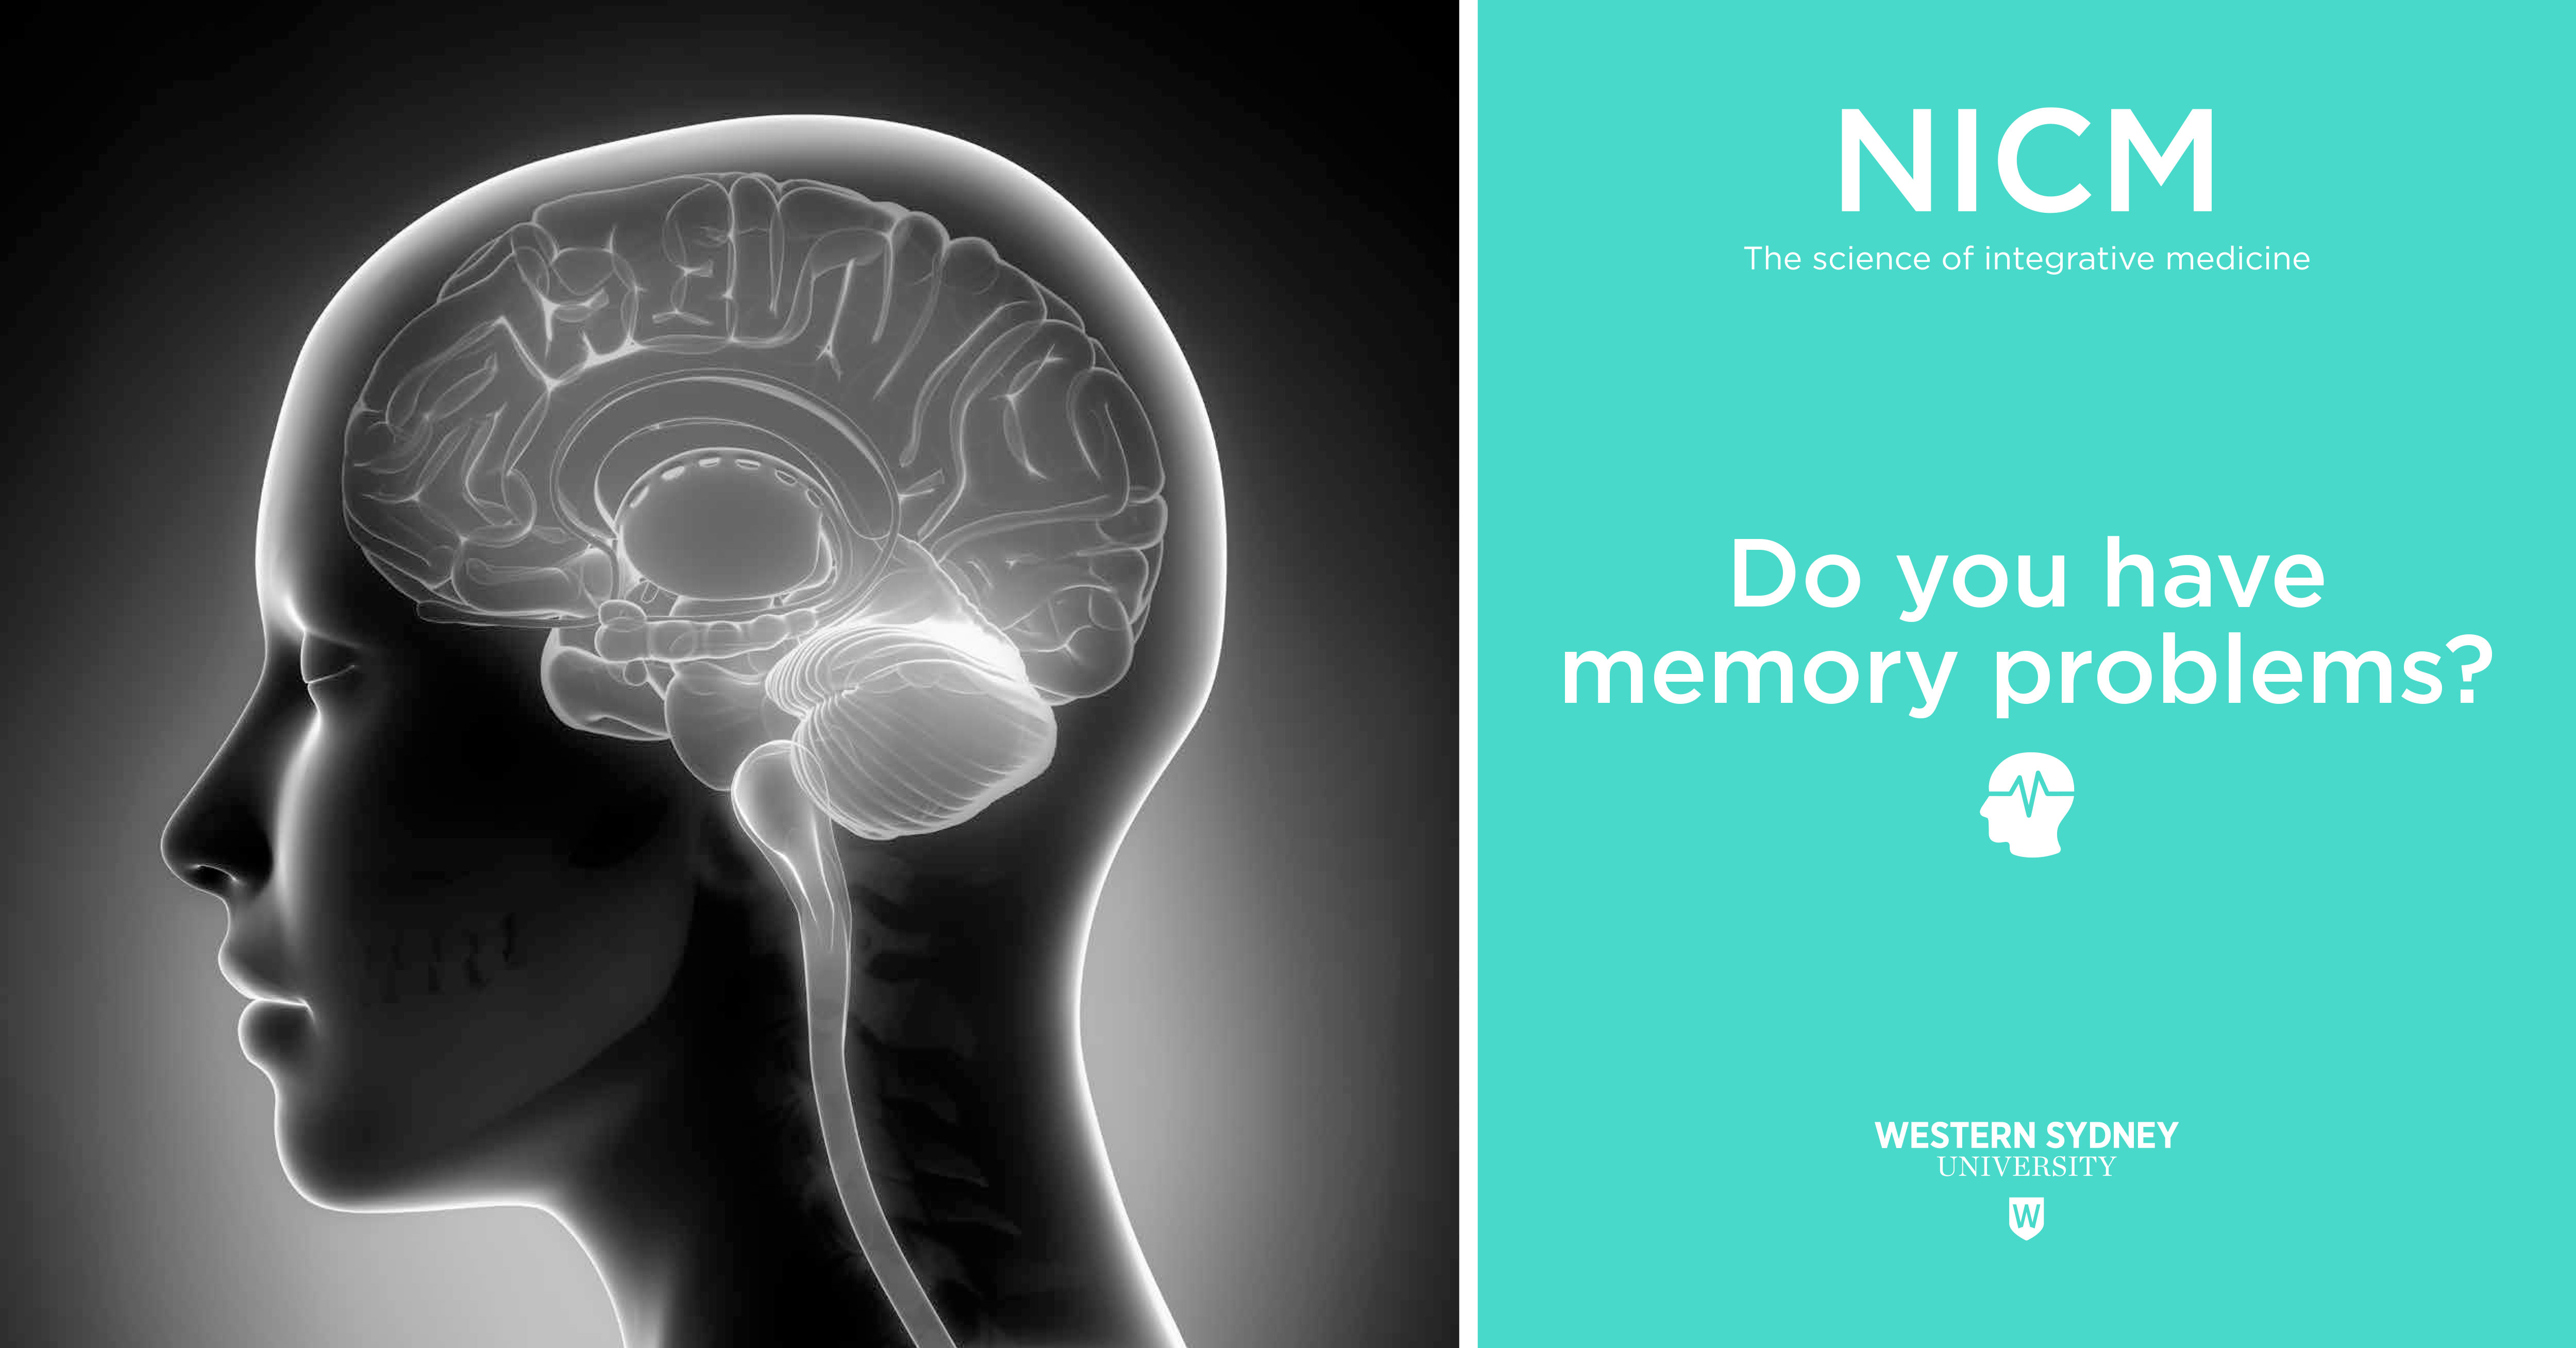 Do you have memory problems?